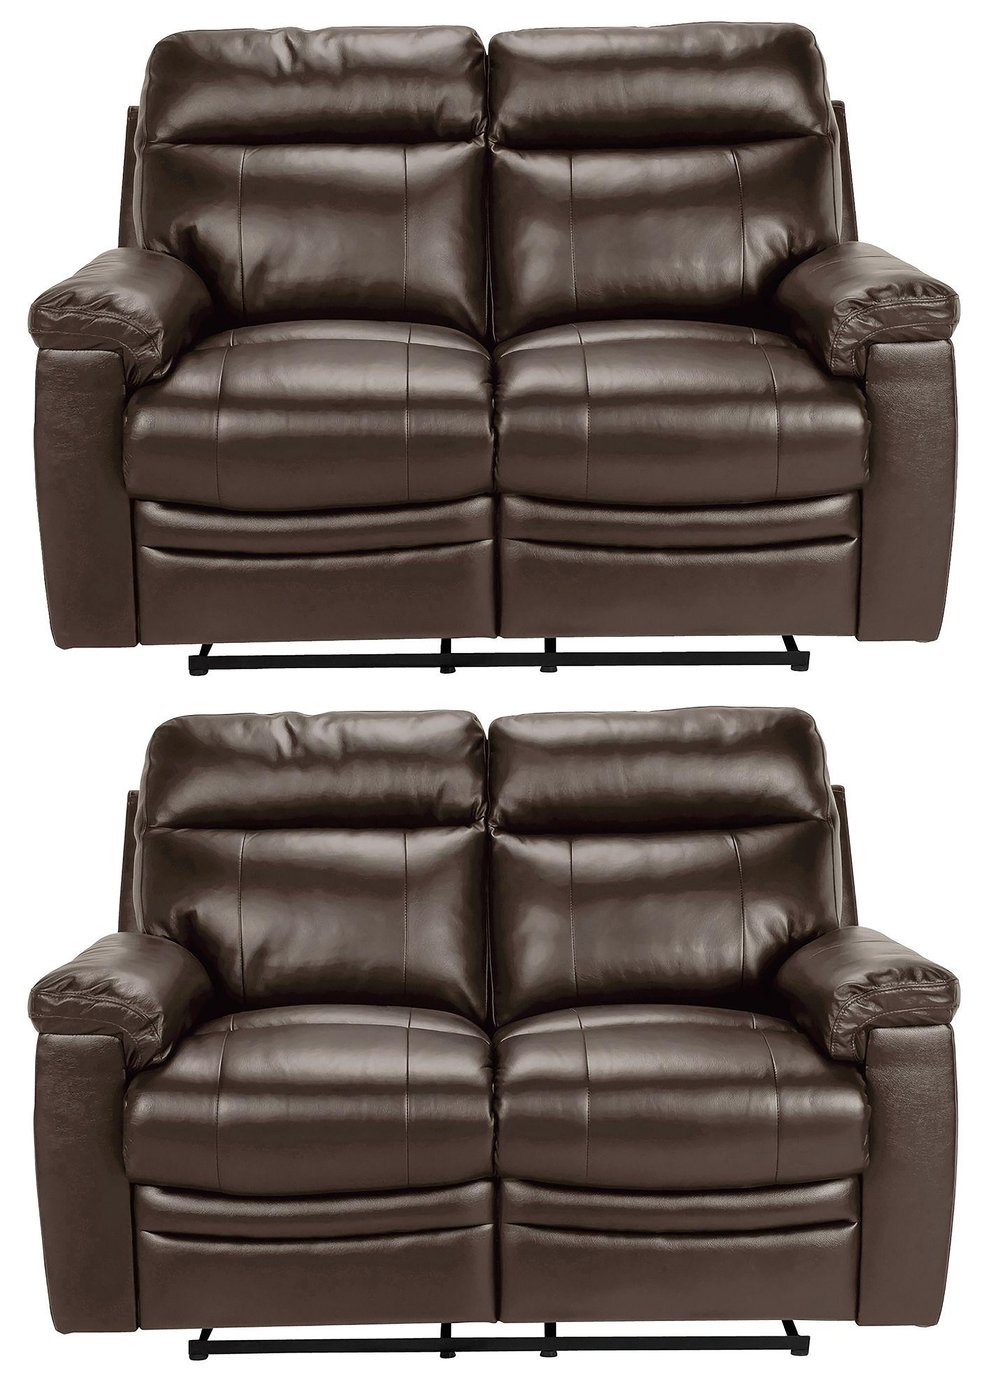 Argos Home New Paolo Pair of 2 Seat Recliner Sofa - Brown